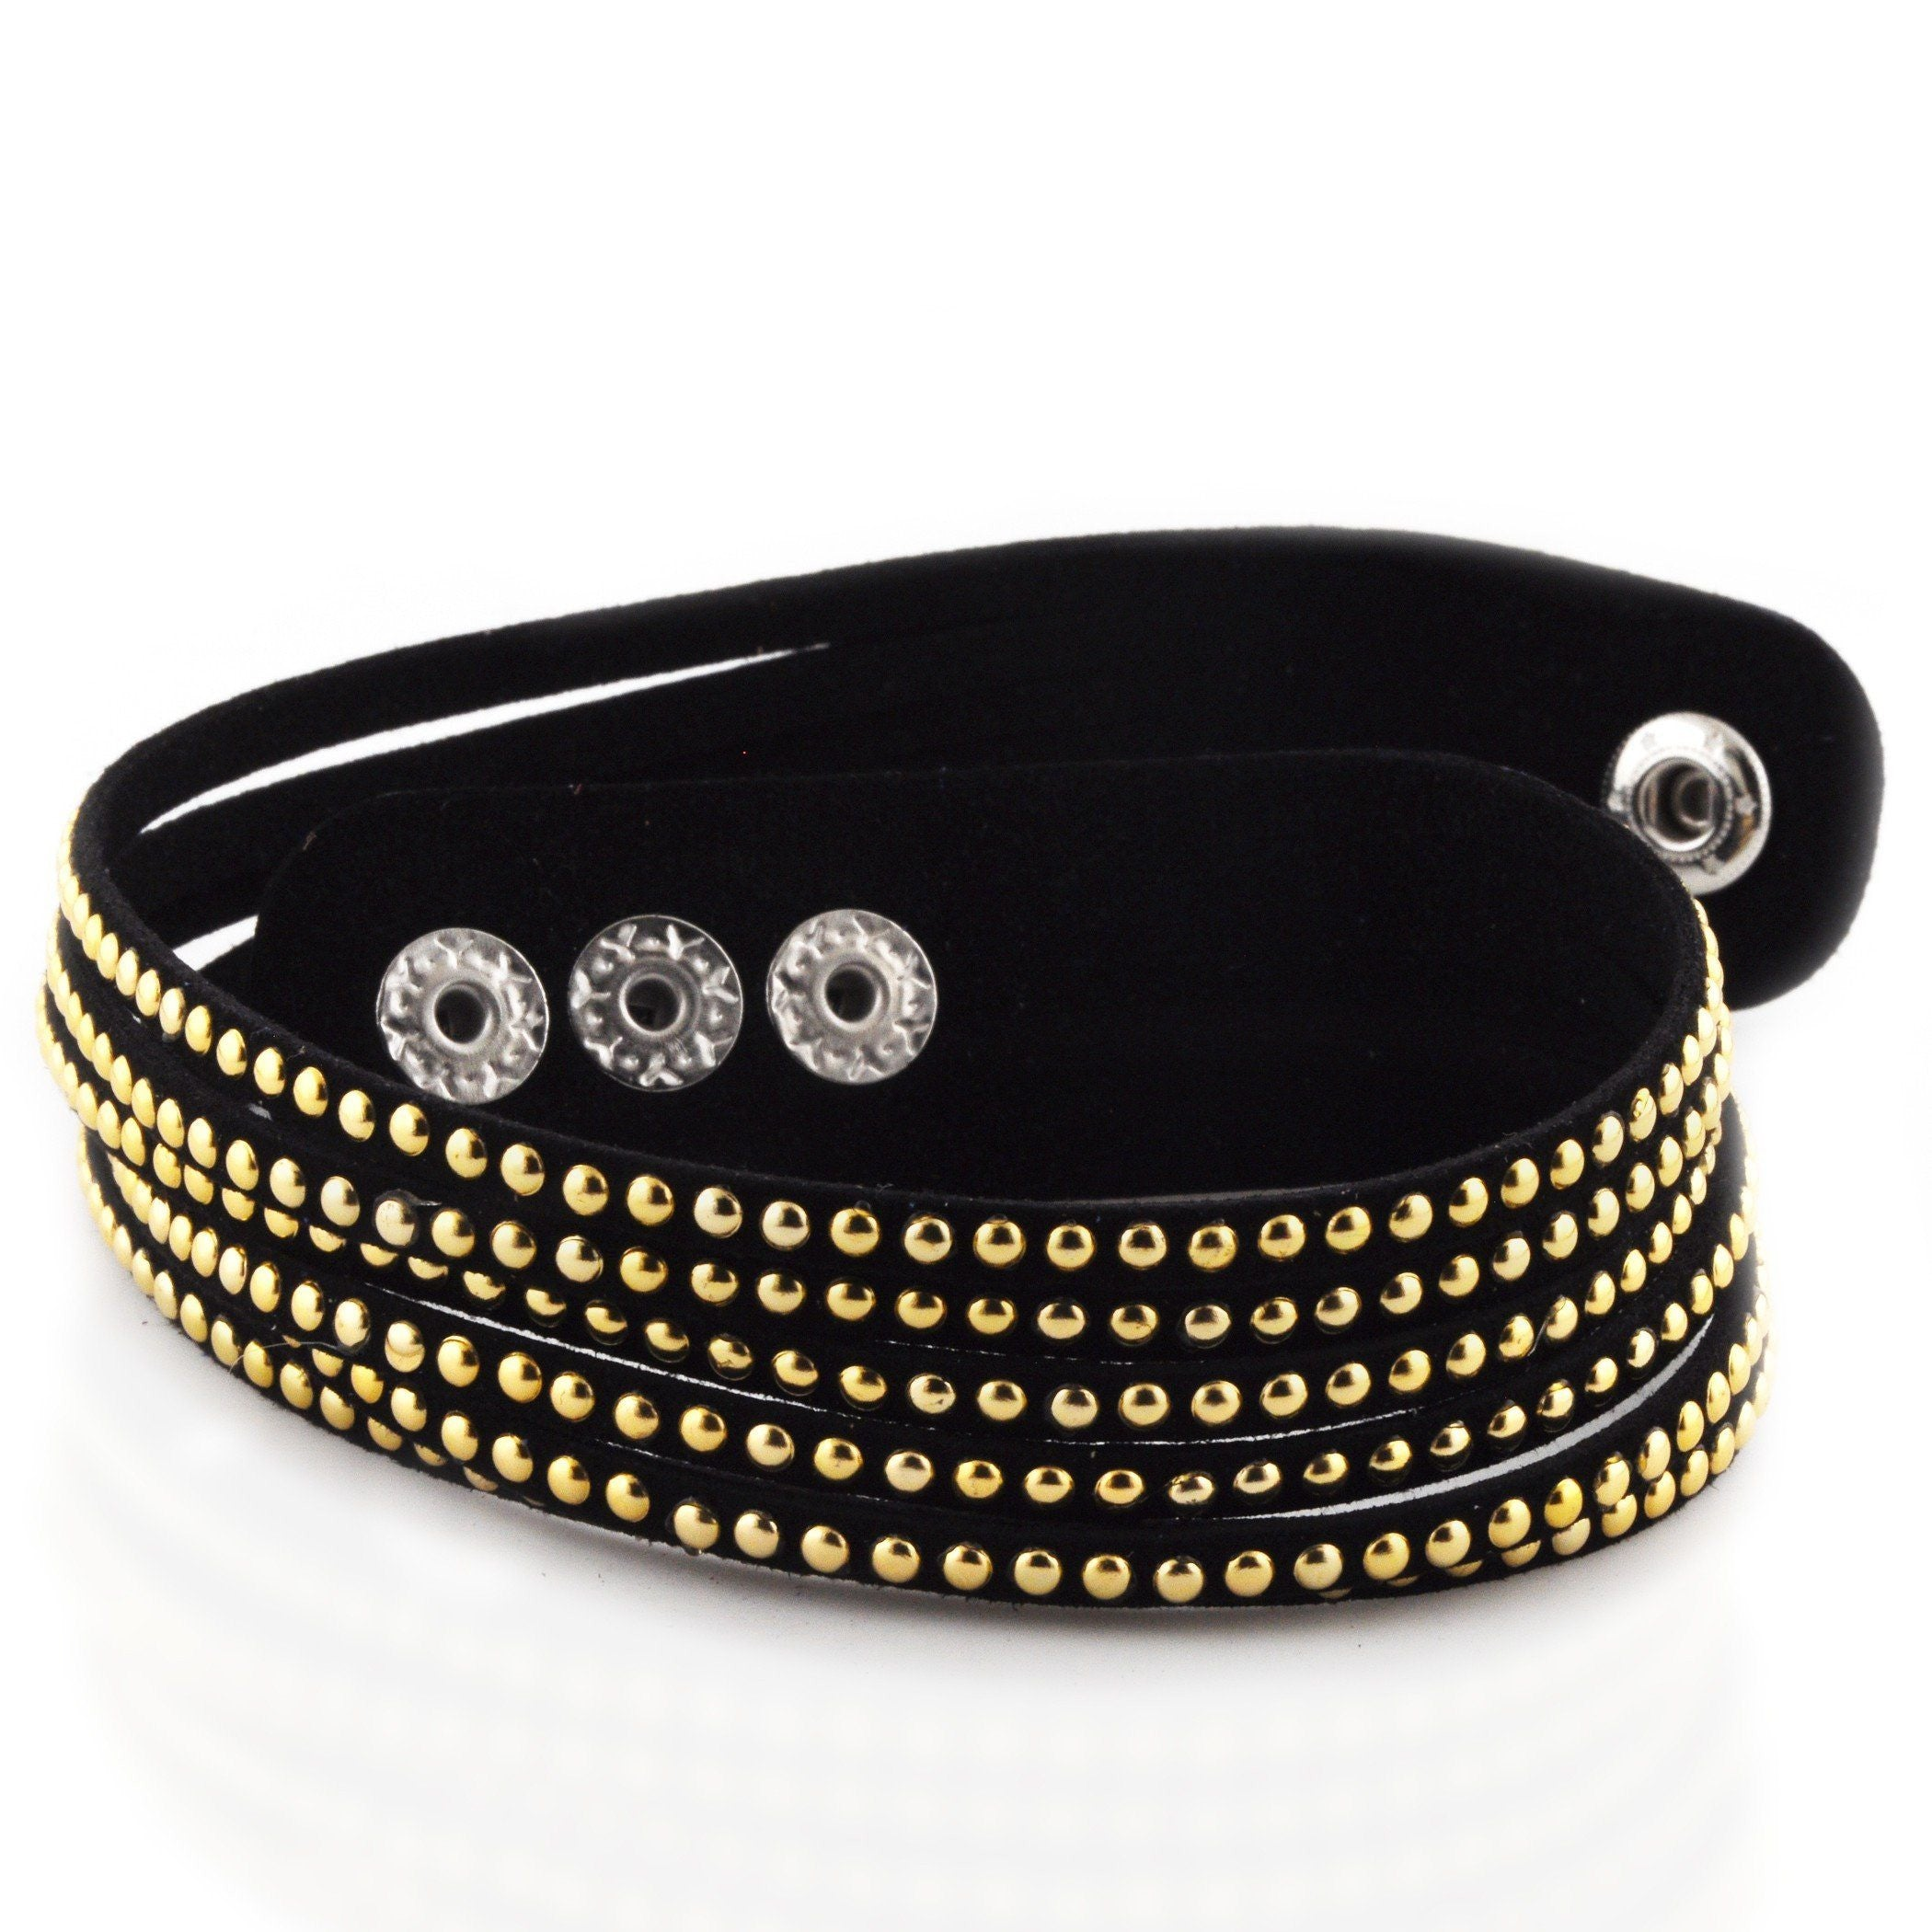 Black Soft Leather Wrap Bracelet with Stainless Steel Beading - 7""